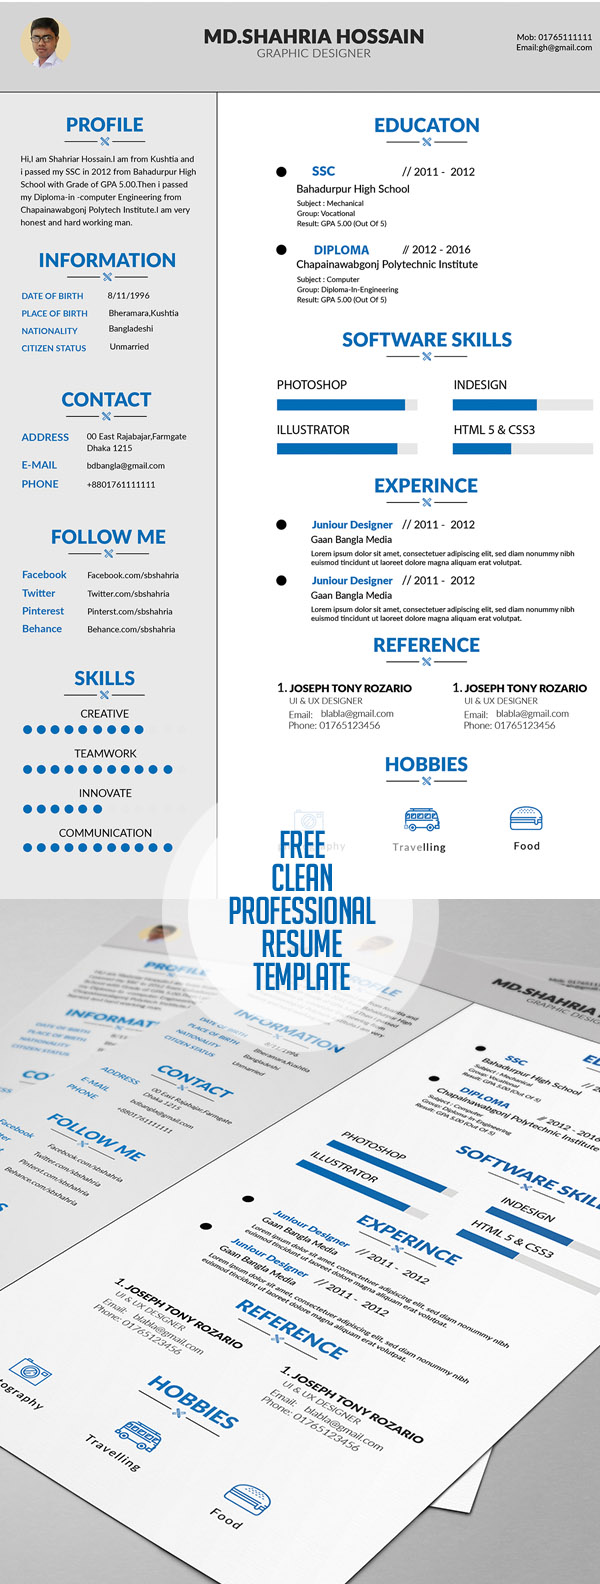 Free Clean Proffesional Resume Design  Template For Cover Letter